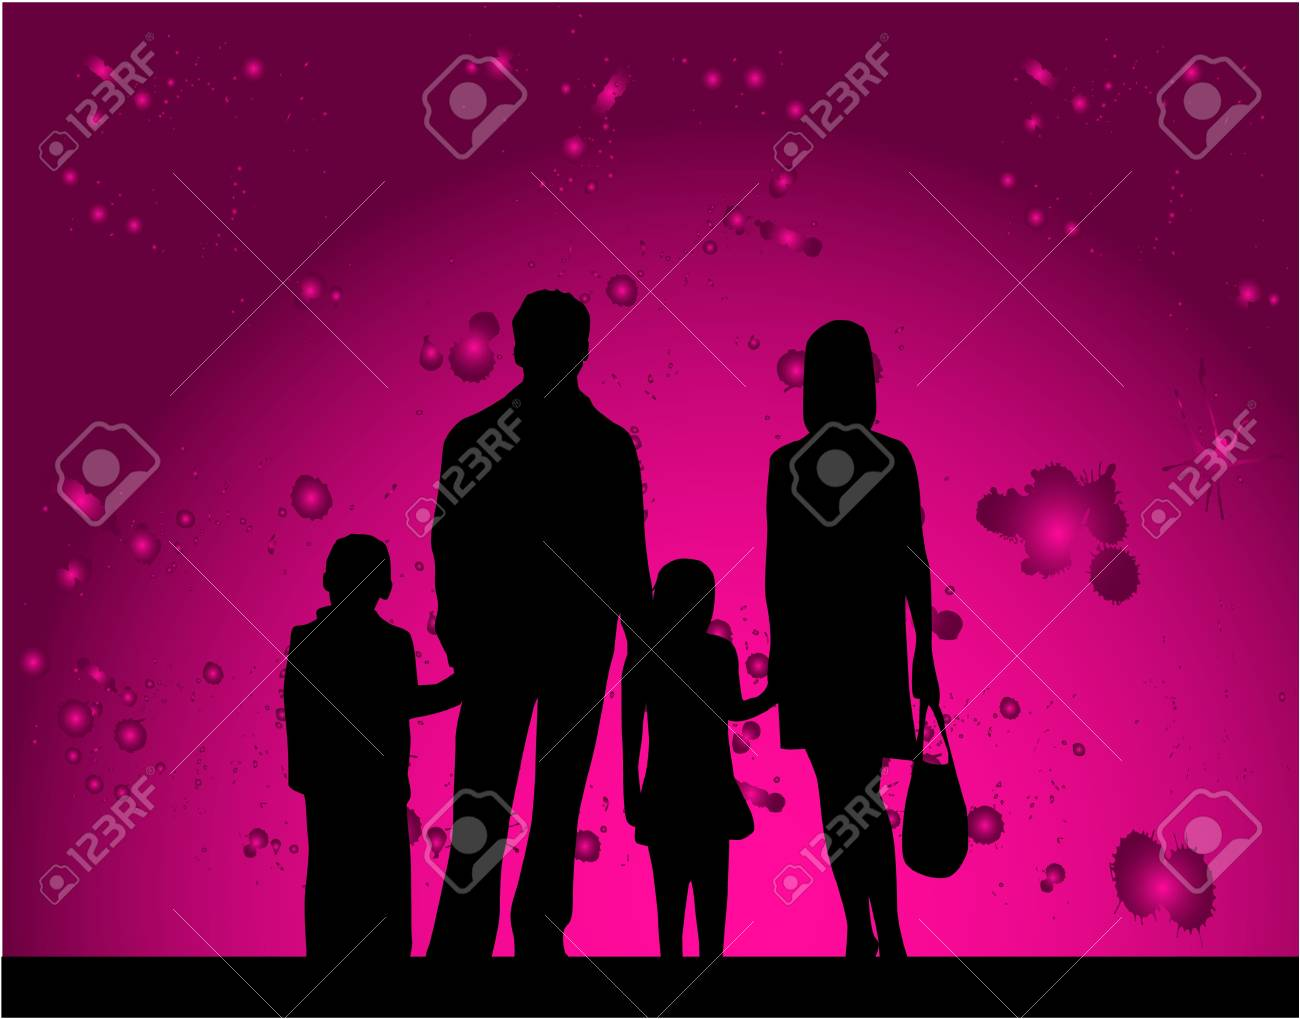 Silhouette families - pink background Stock Vector - 16556814